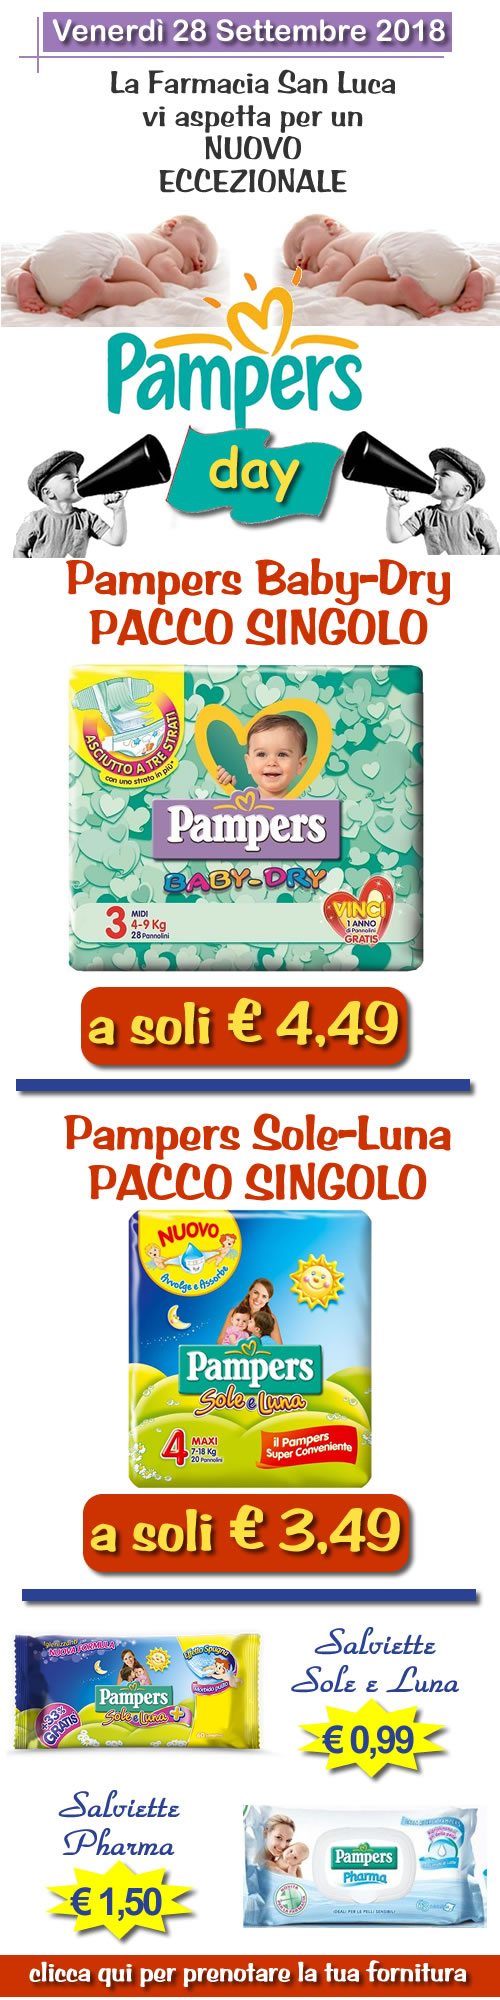 pampers day 28 09 18